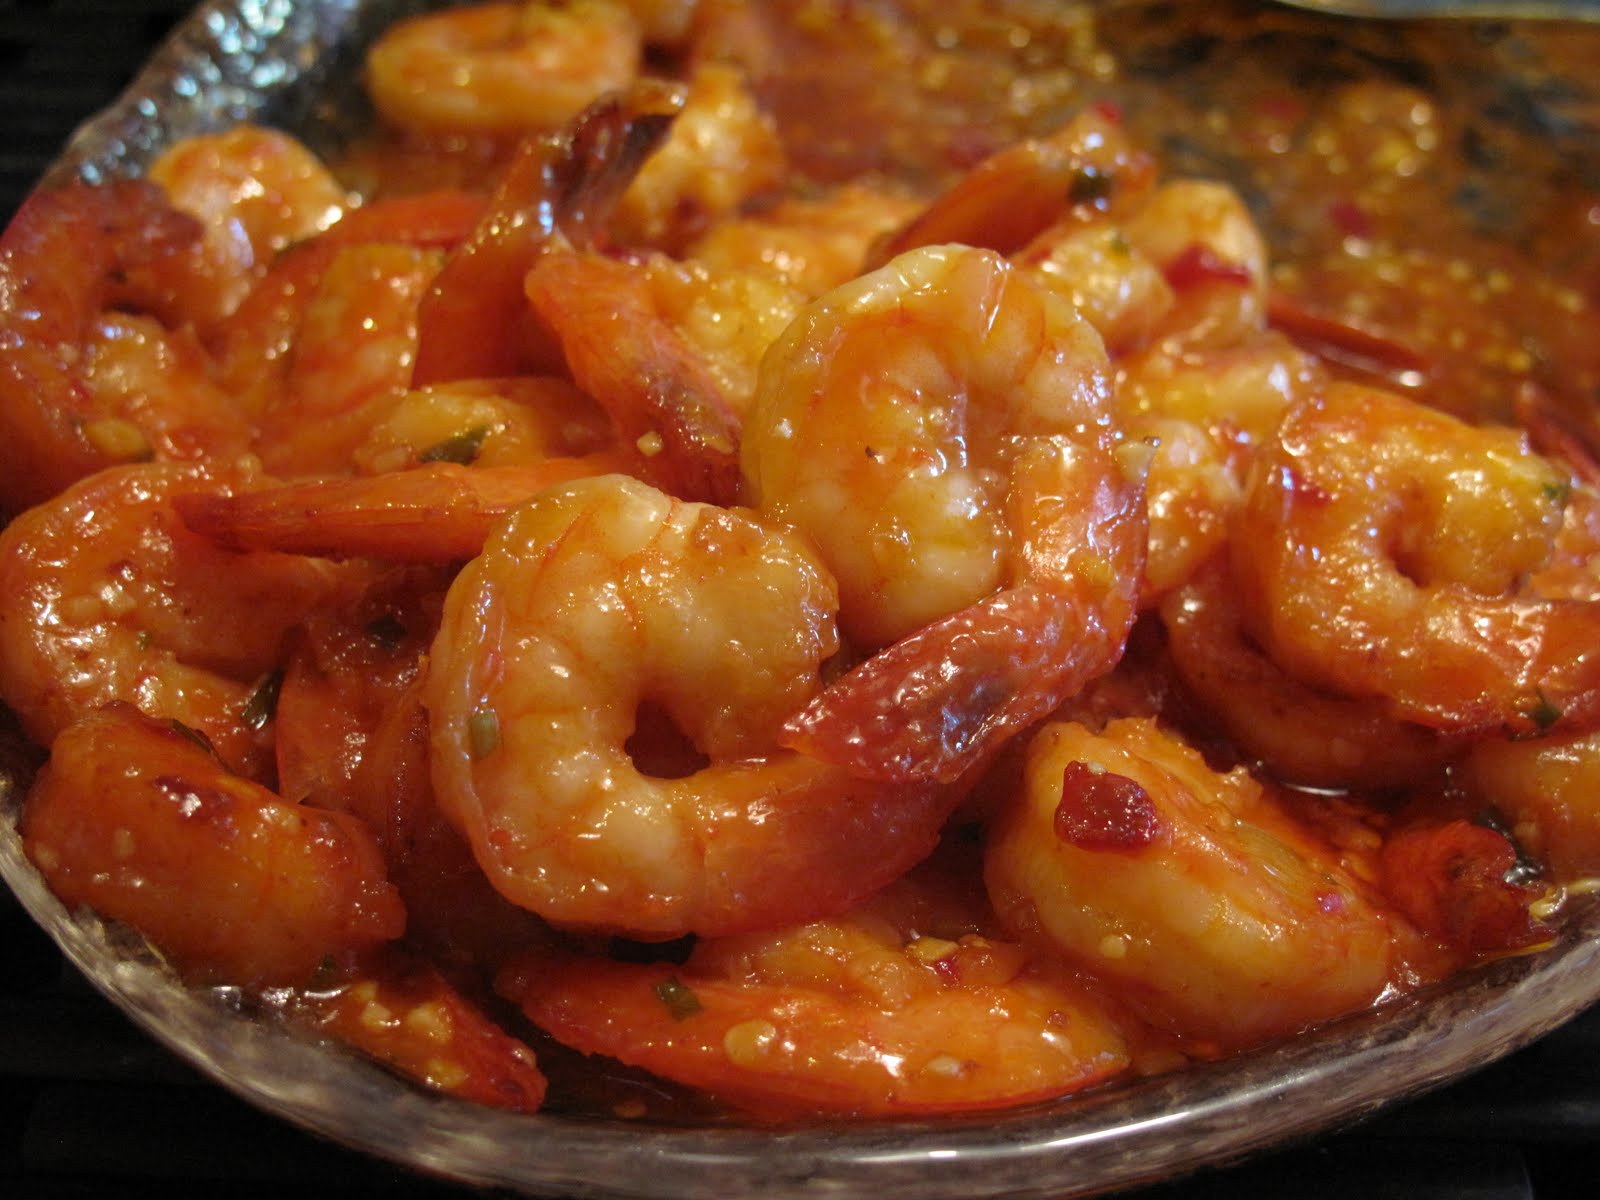 Portraits by Christina blog: Spicy Shrimp Recipe